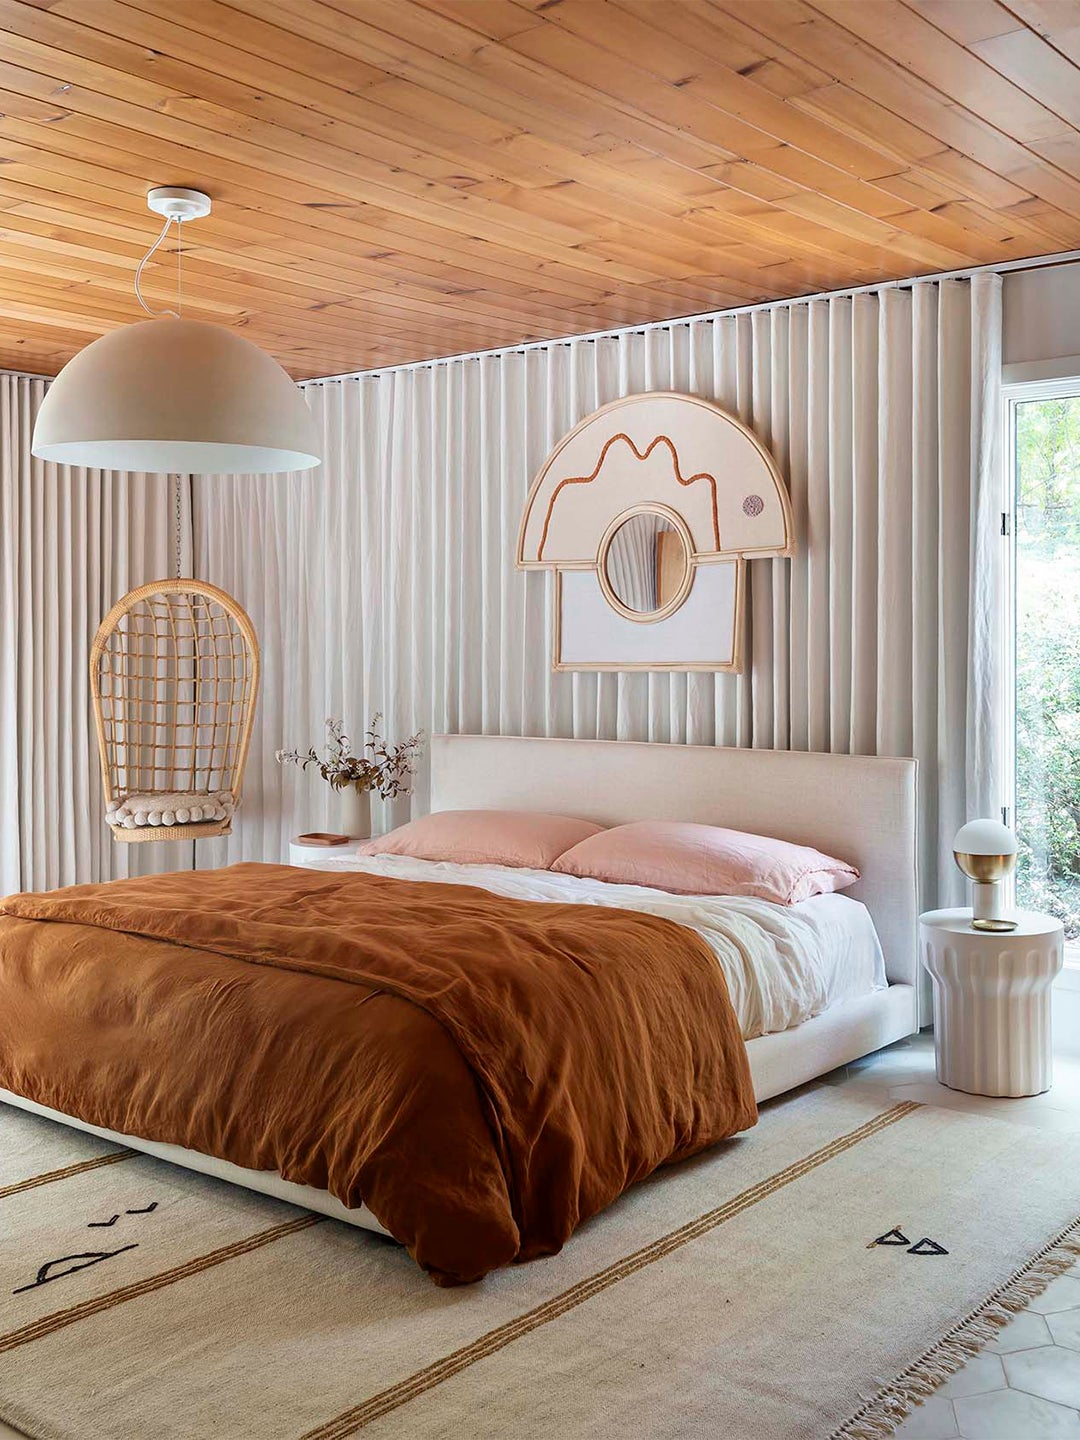 pink and orange bed with modern wood ceiling and gray drapes